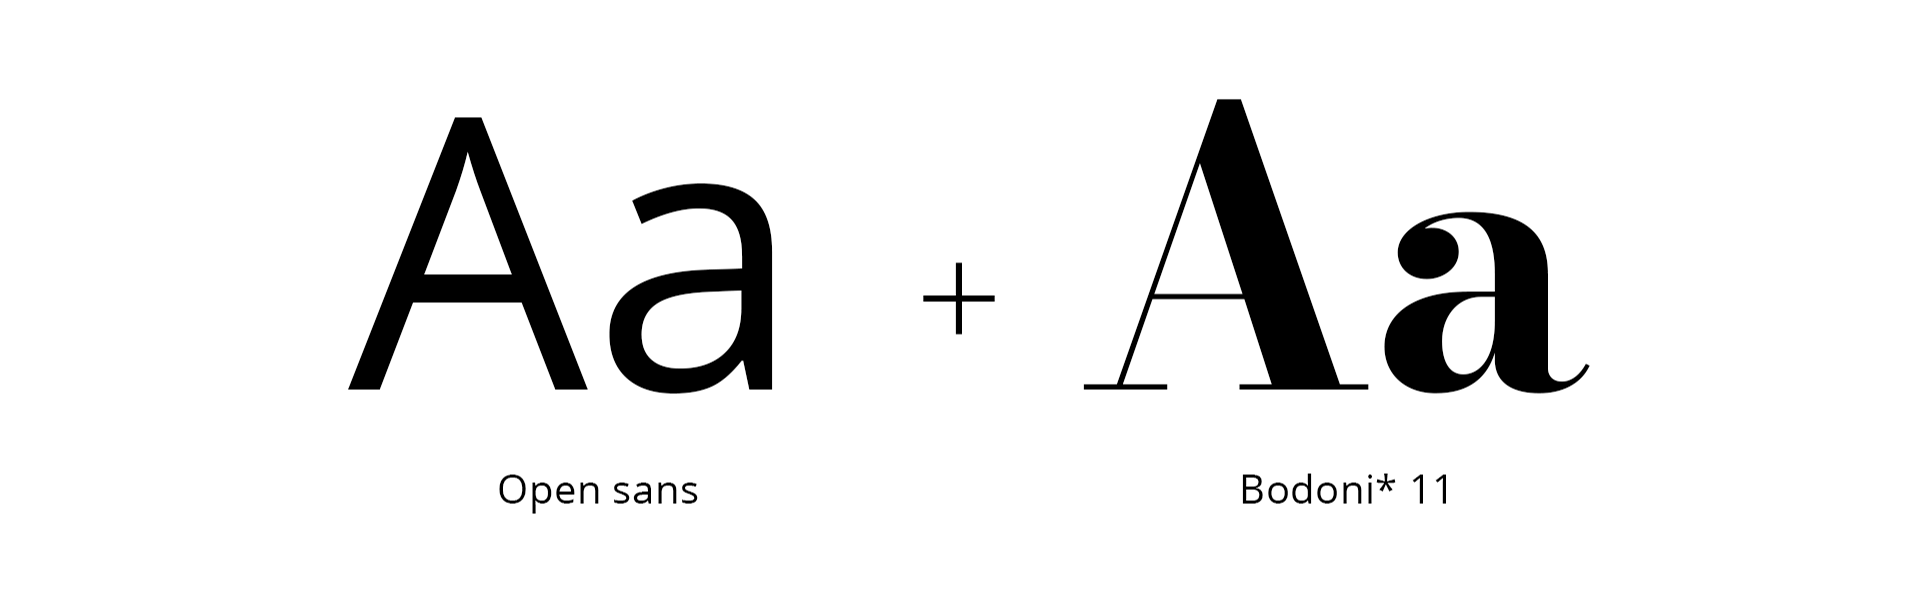 Display of typefaces used in this project